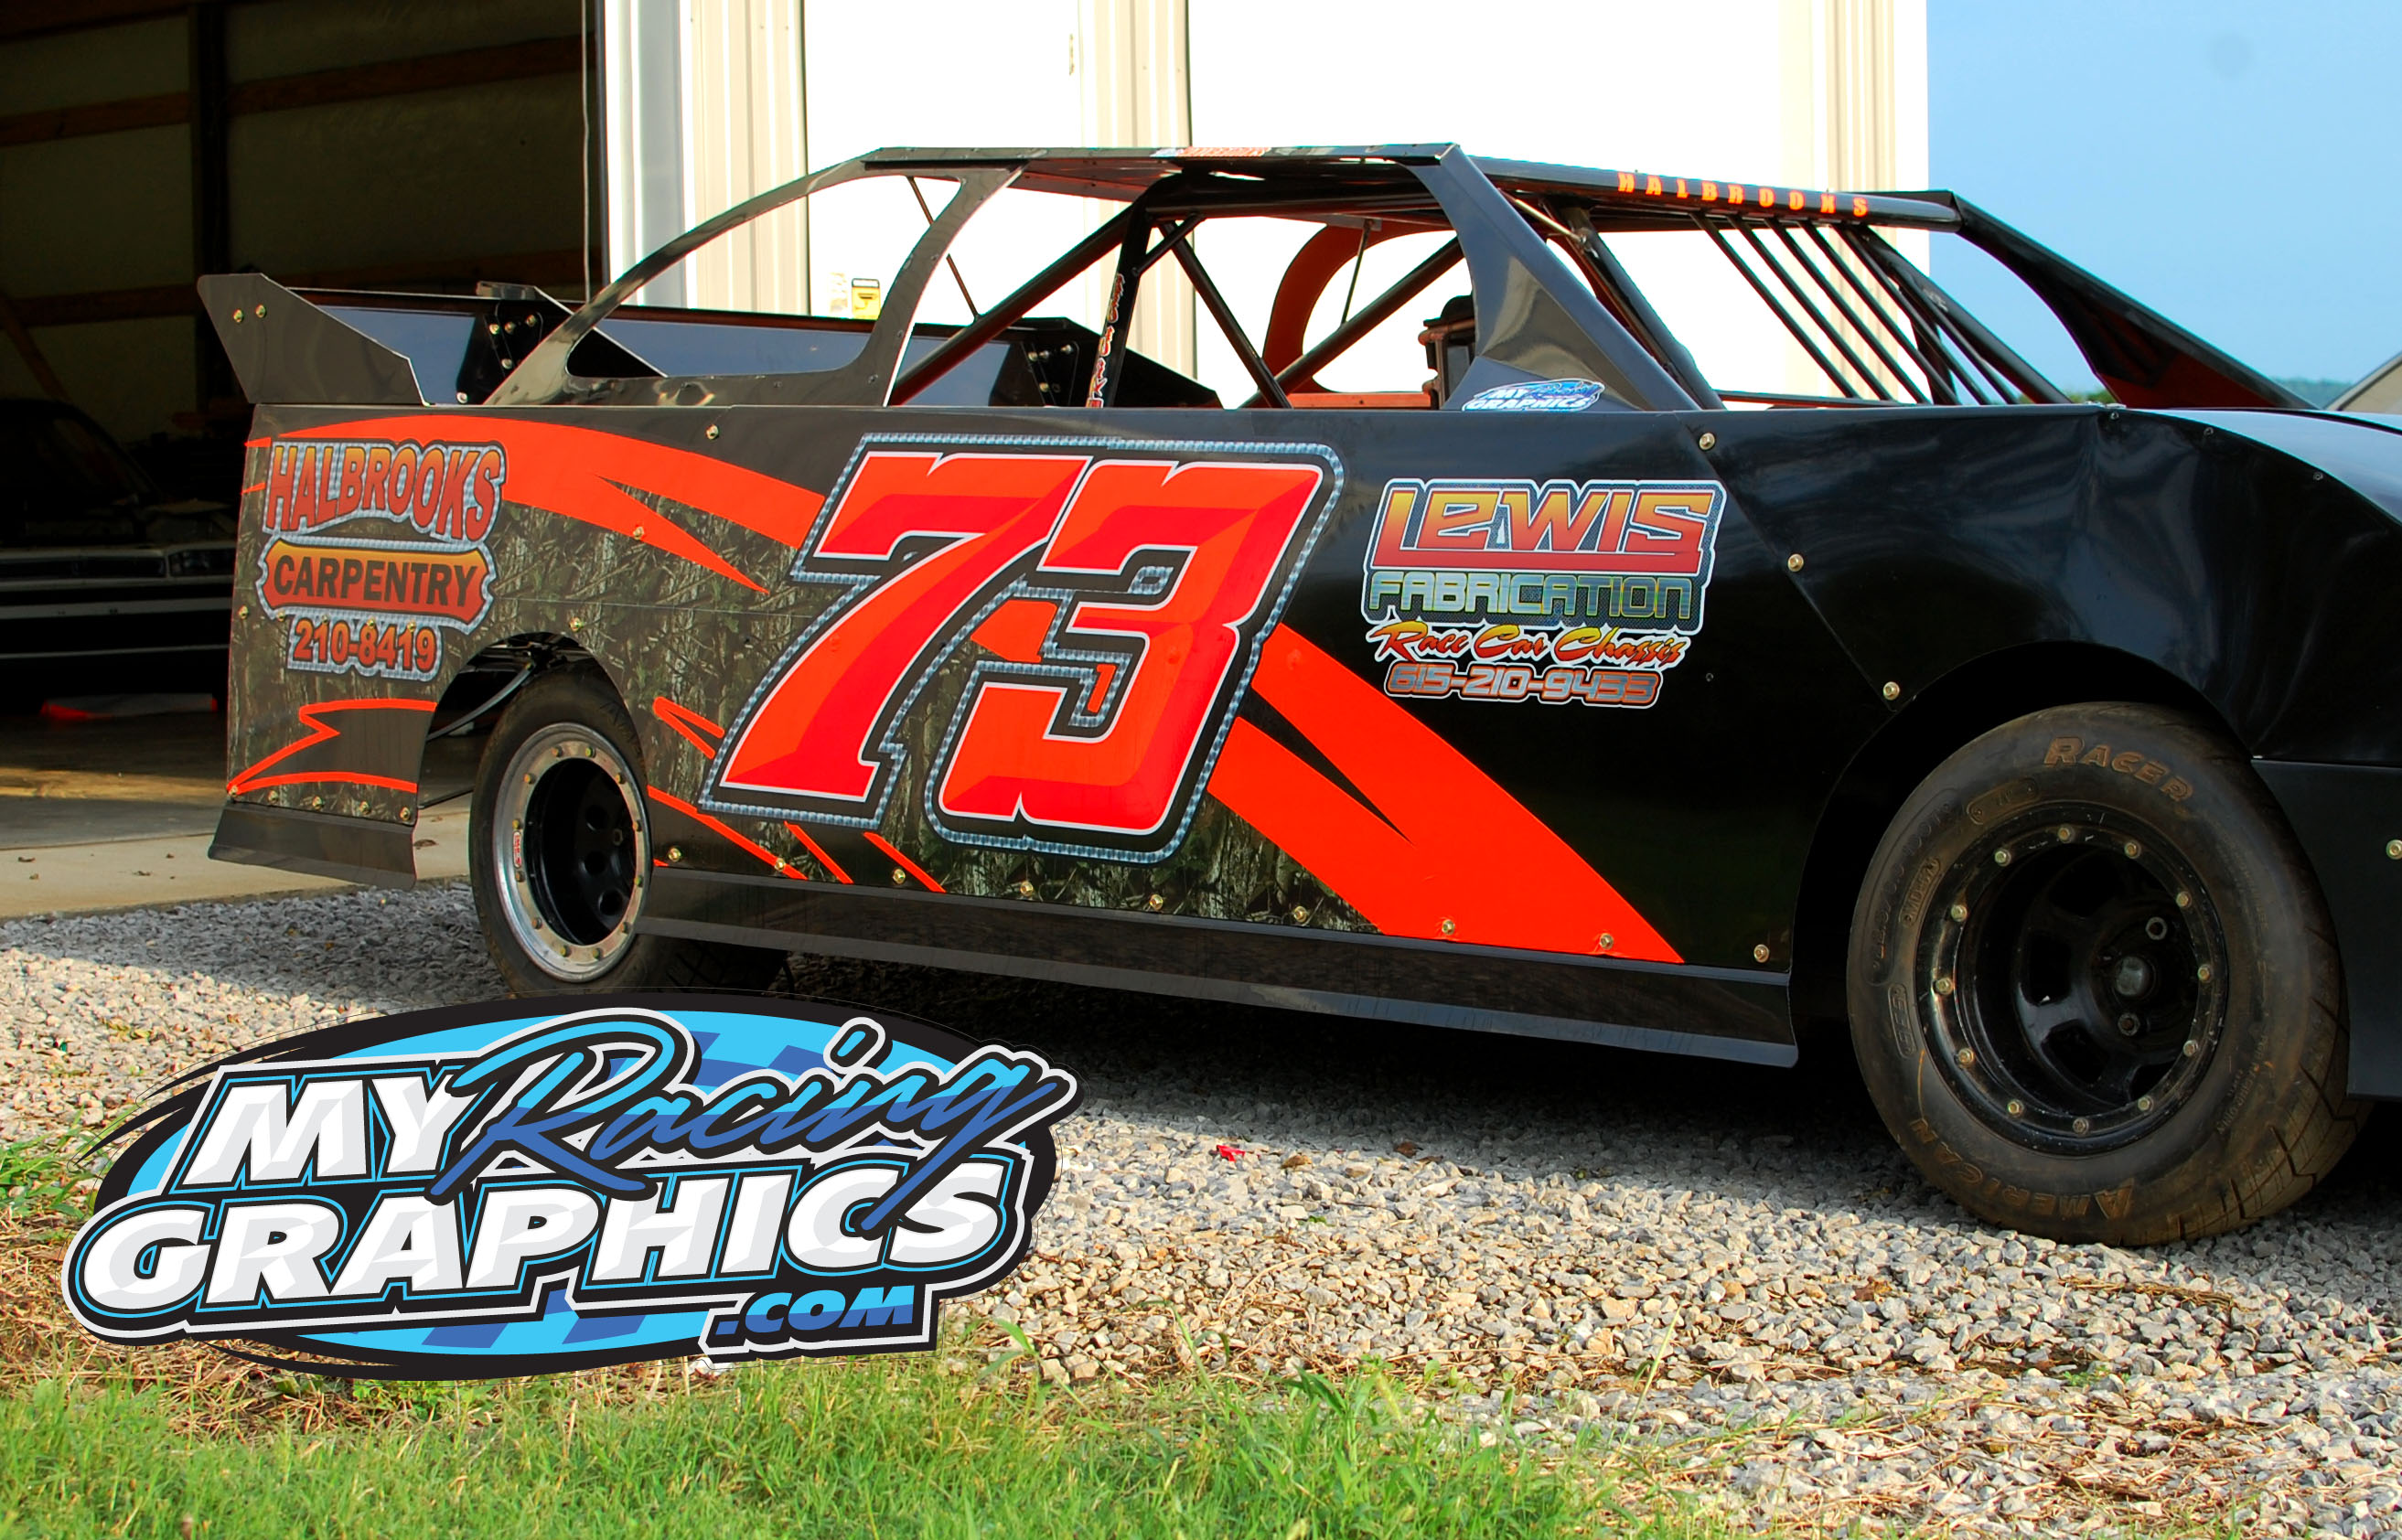 Dustin Halabrooks mini stock wrap